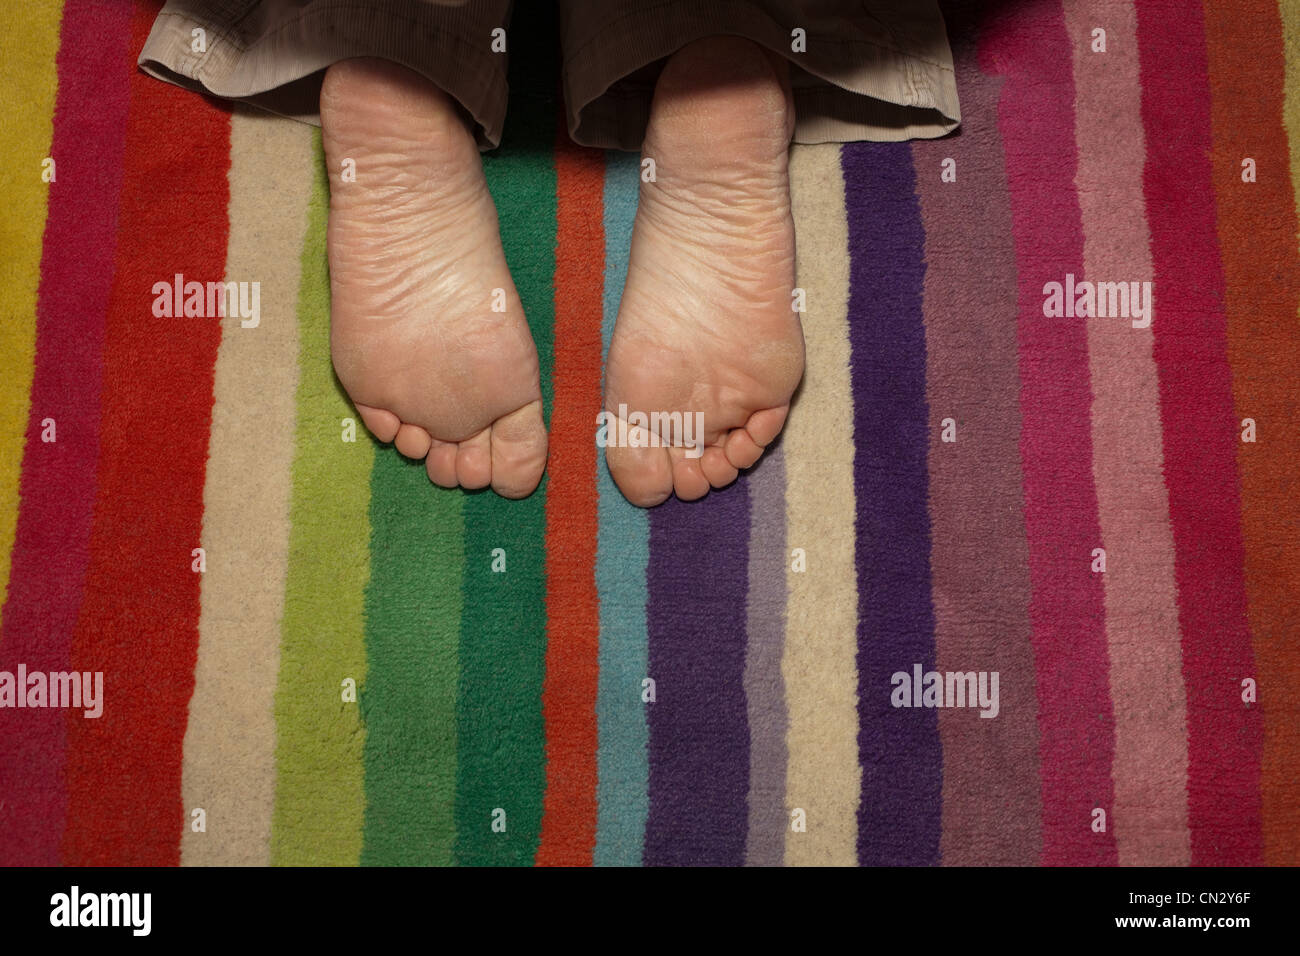 Child's feet on striped rug - Stock Image